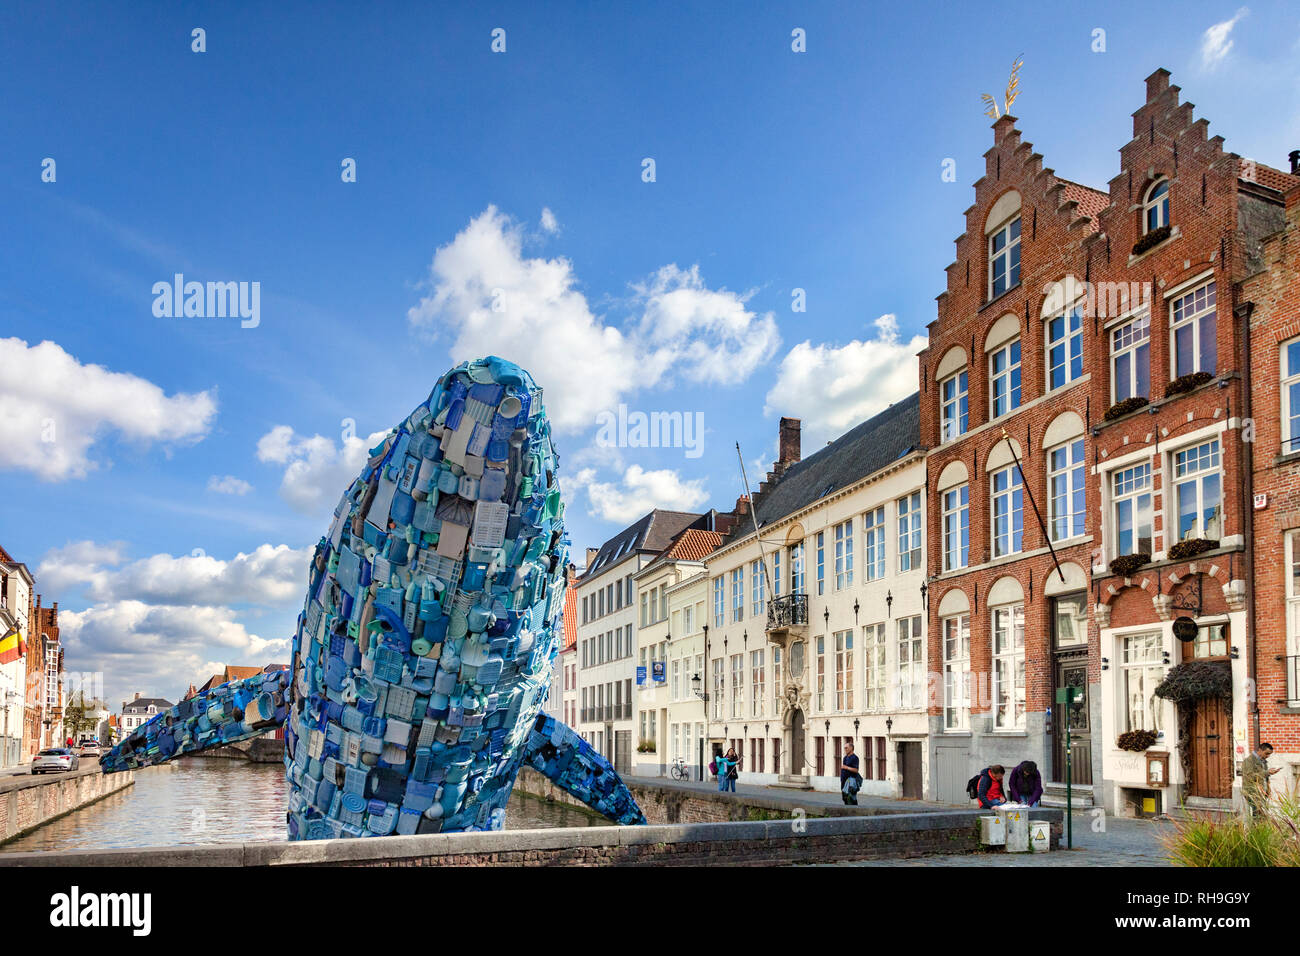 25 September 2018: Bruges, Belgium - The Bruges Whale, known as Skyscraper, made from  5 tons of plastic waste pulled out of the Pacific Ocean, for... Stock Photo